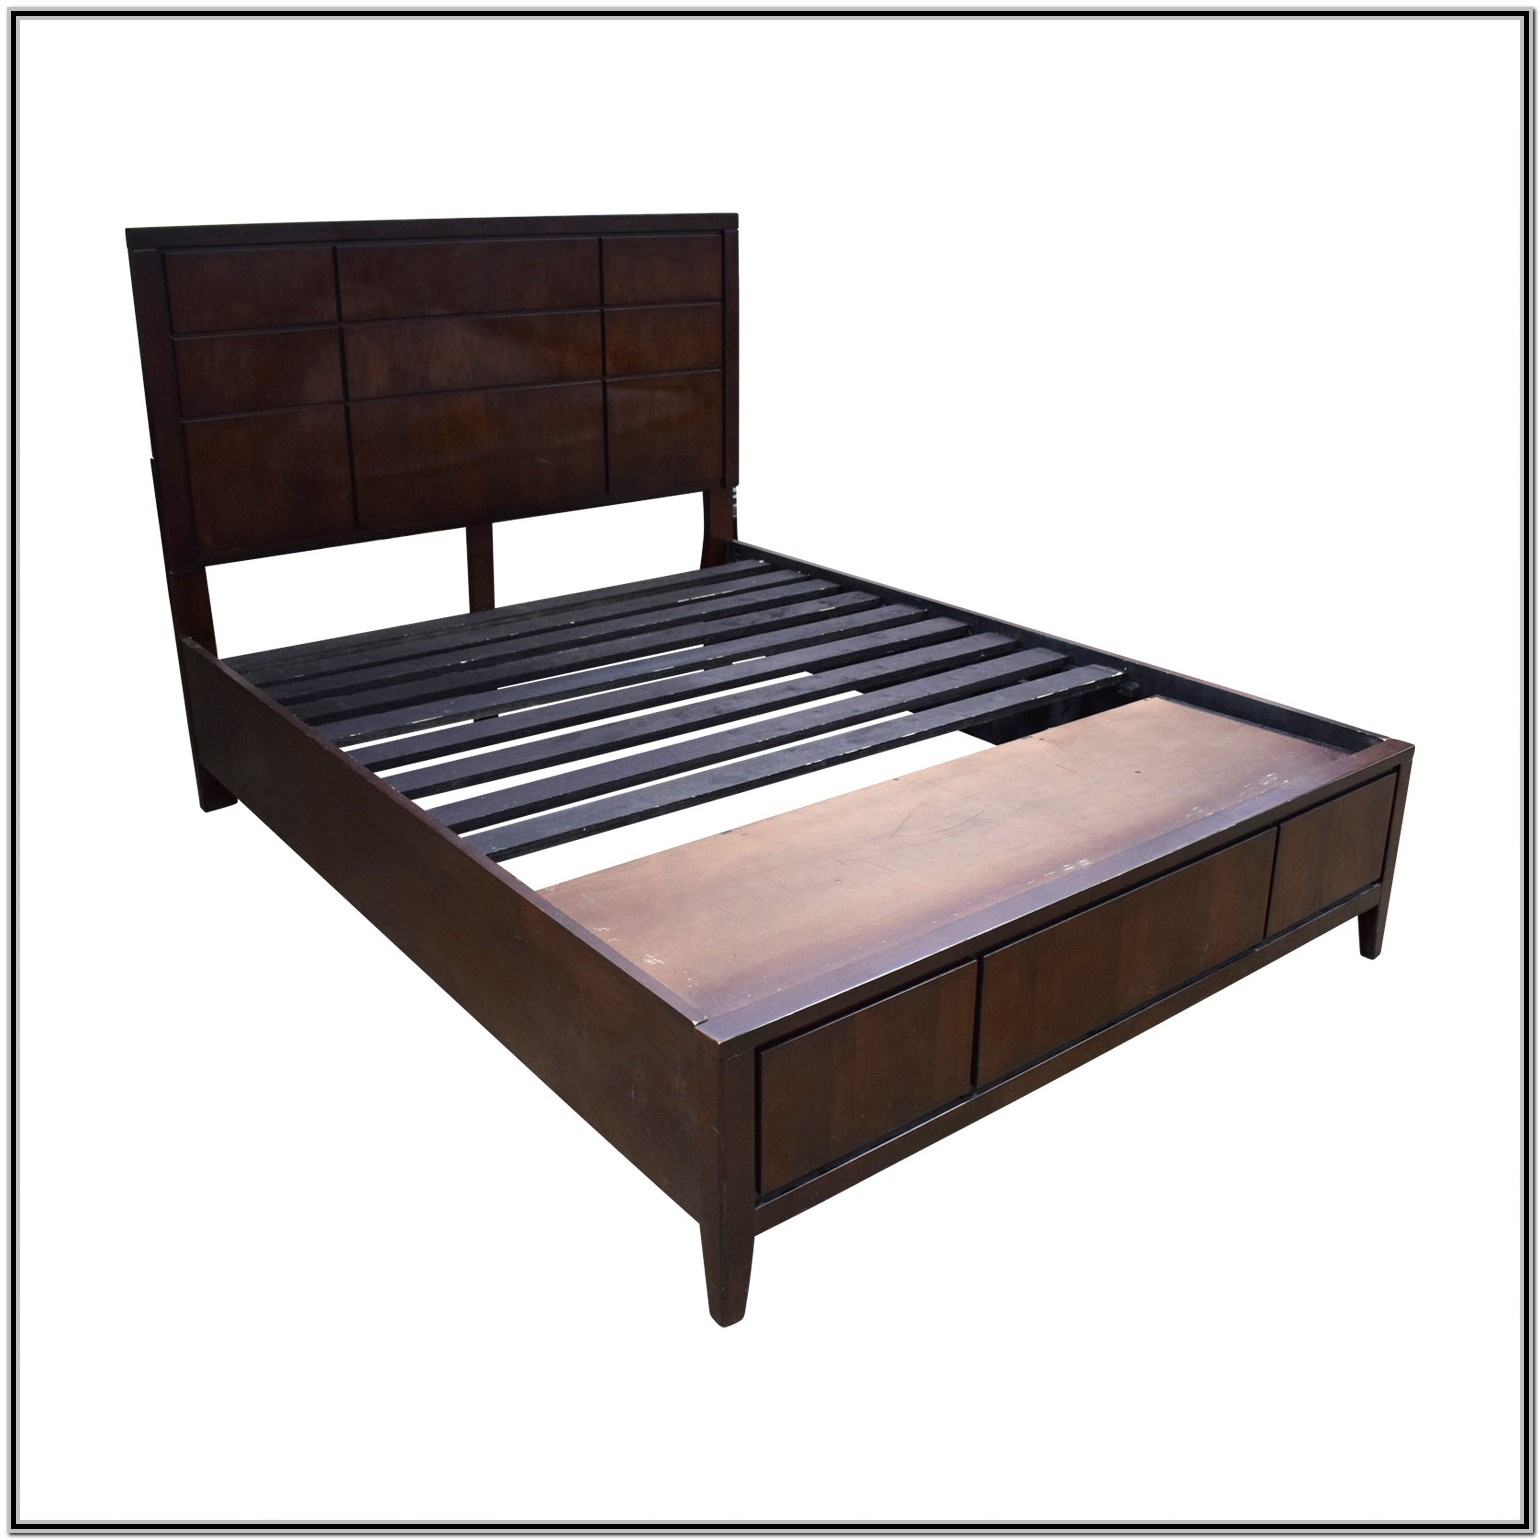 Queen Bed Frame With Storage No Headboard Bedroom Home